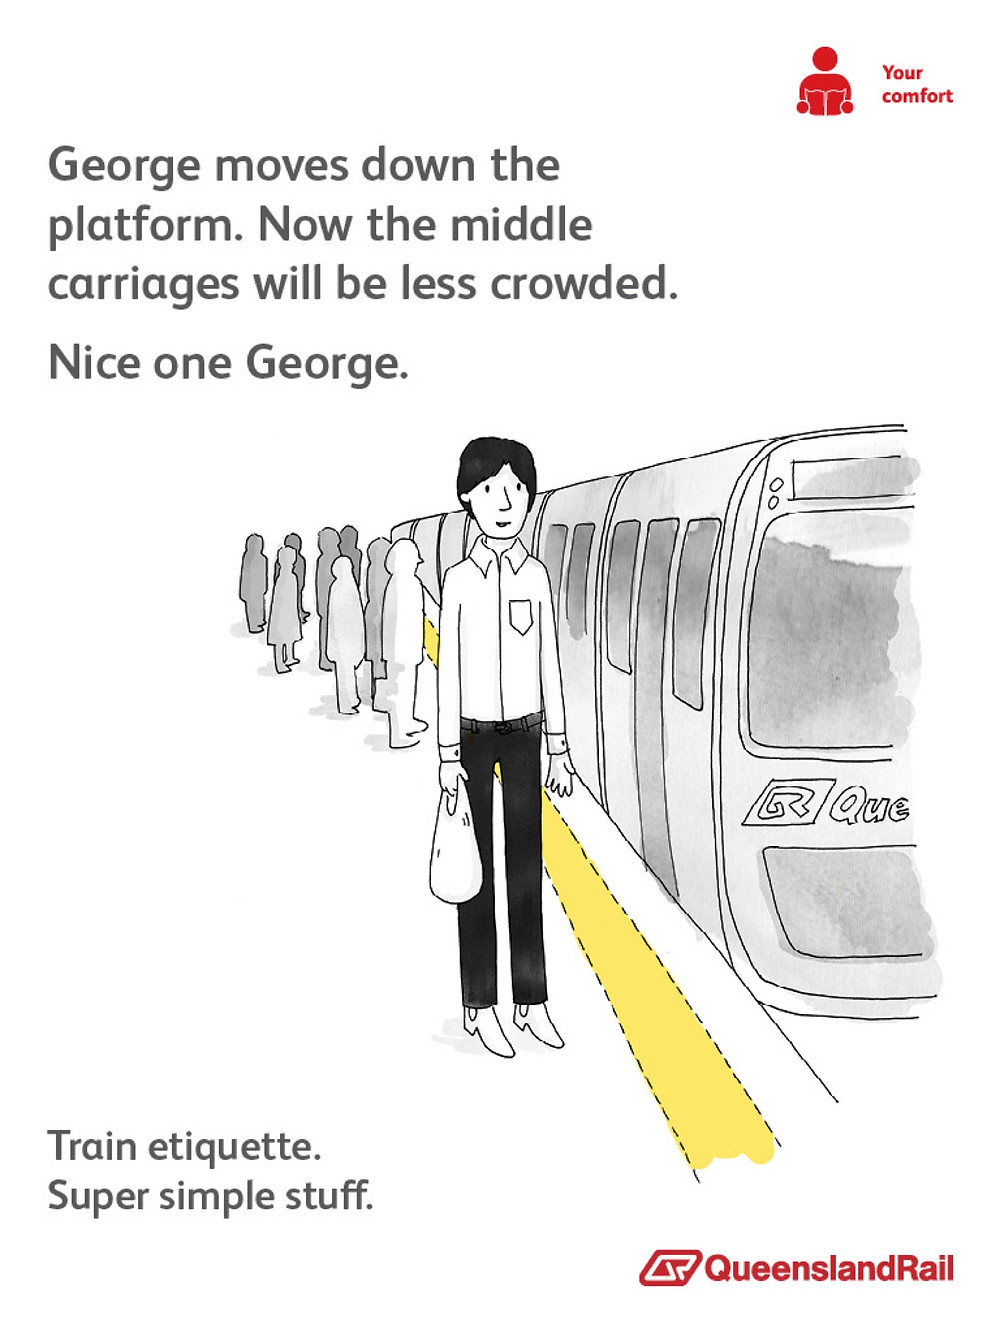 Train etiquette poster, john moves down the train so middle carriages arent so crowded